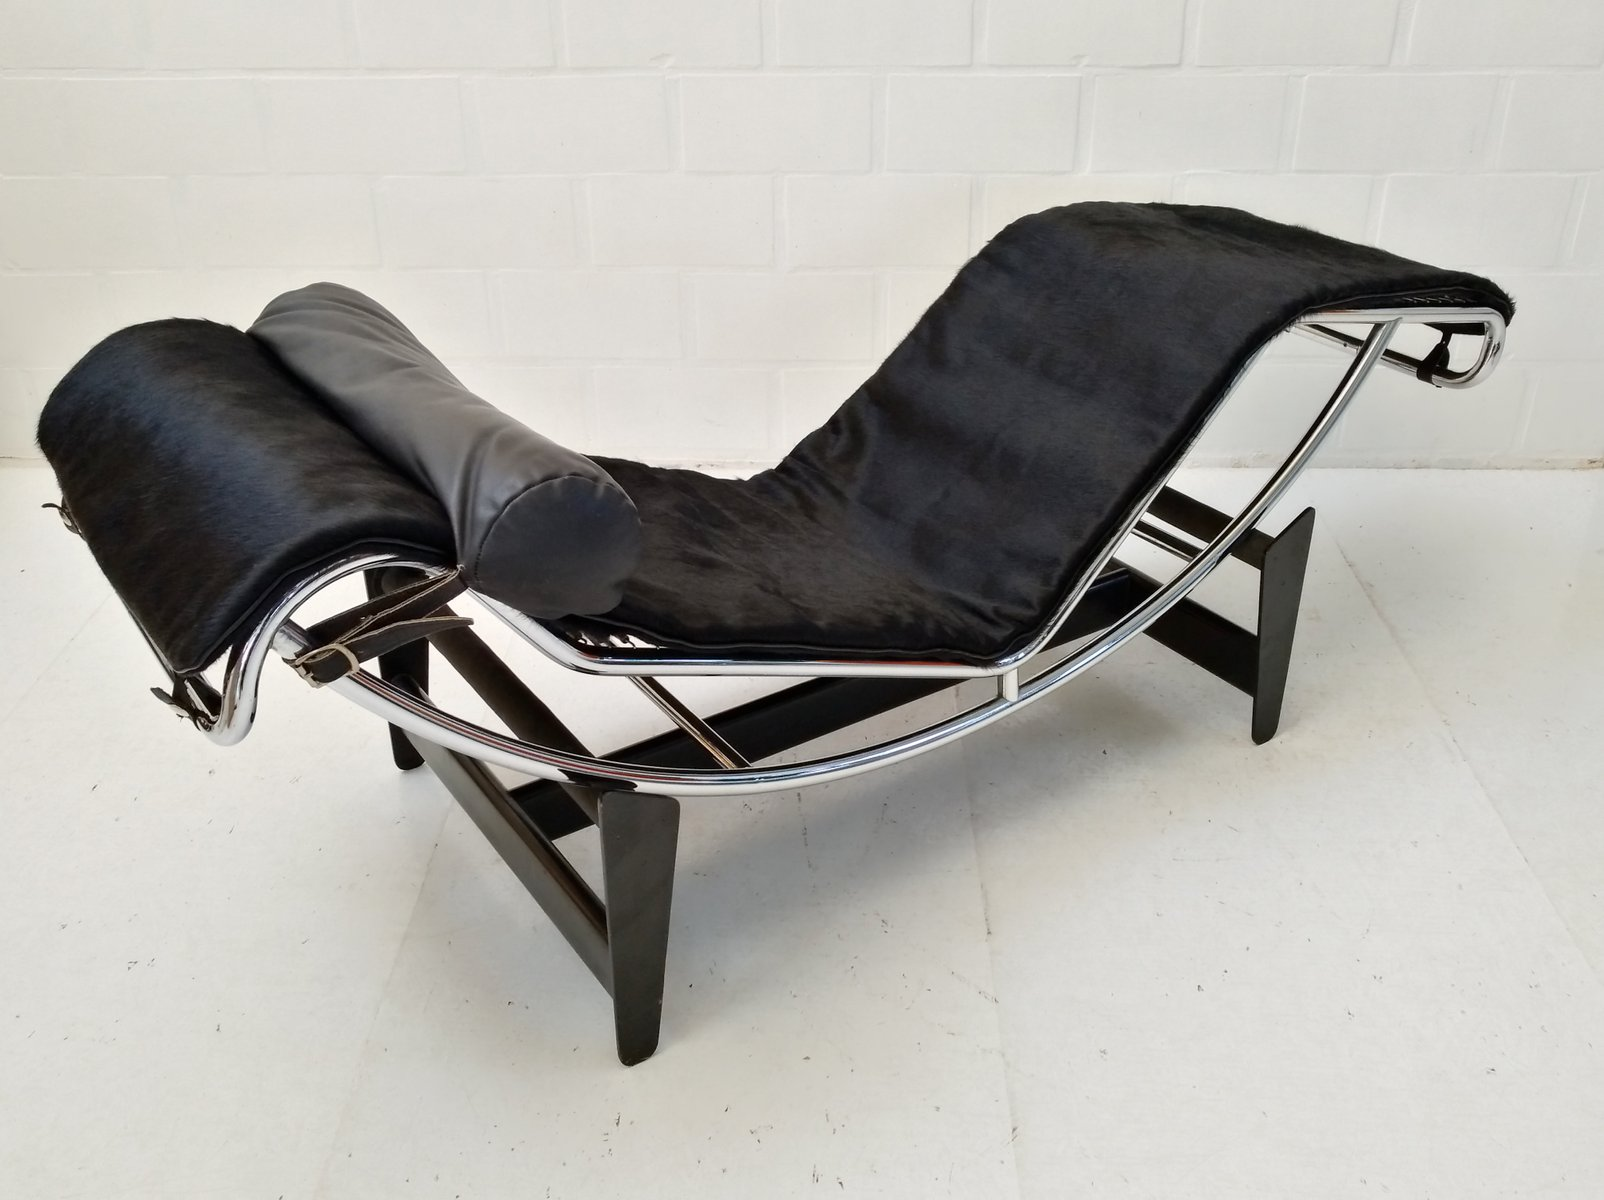 Early lc4 chaise longue by le corbusier perriand for Chaise longue le corbusier precio